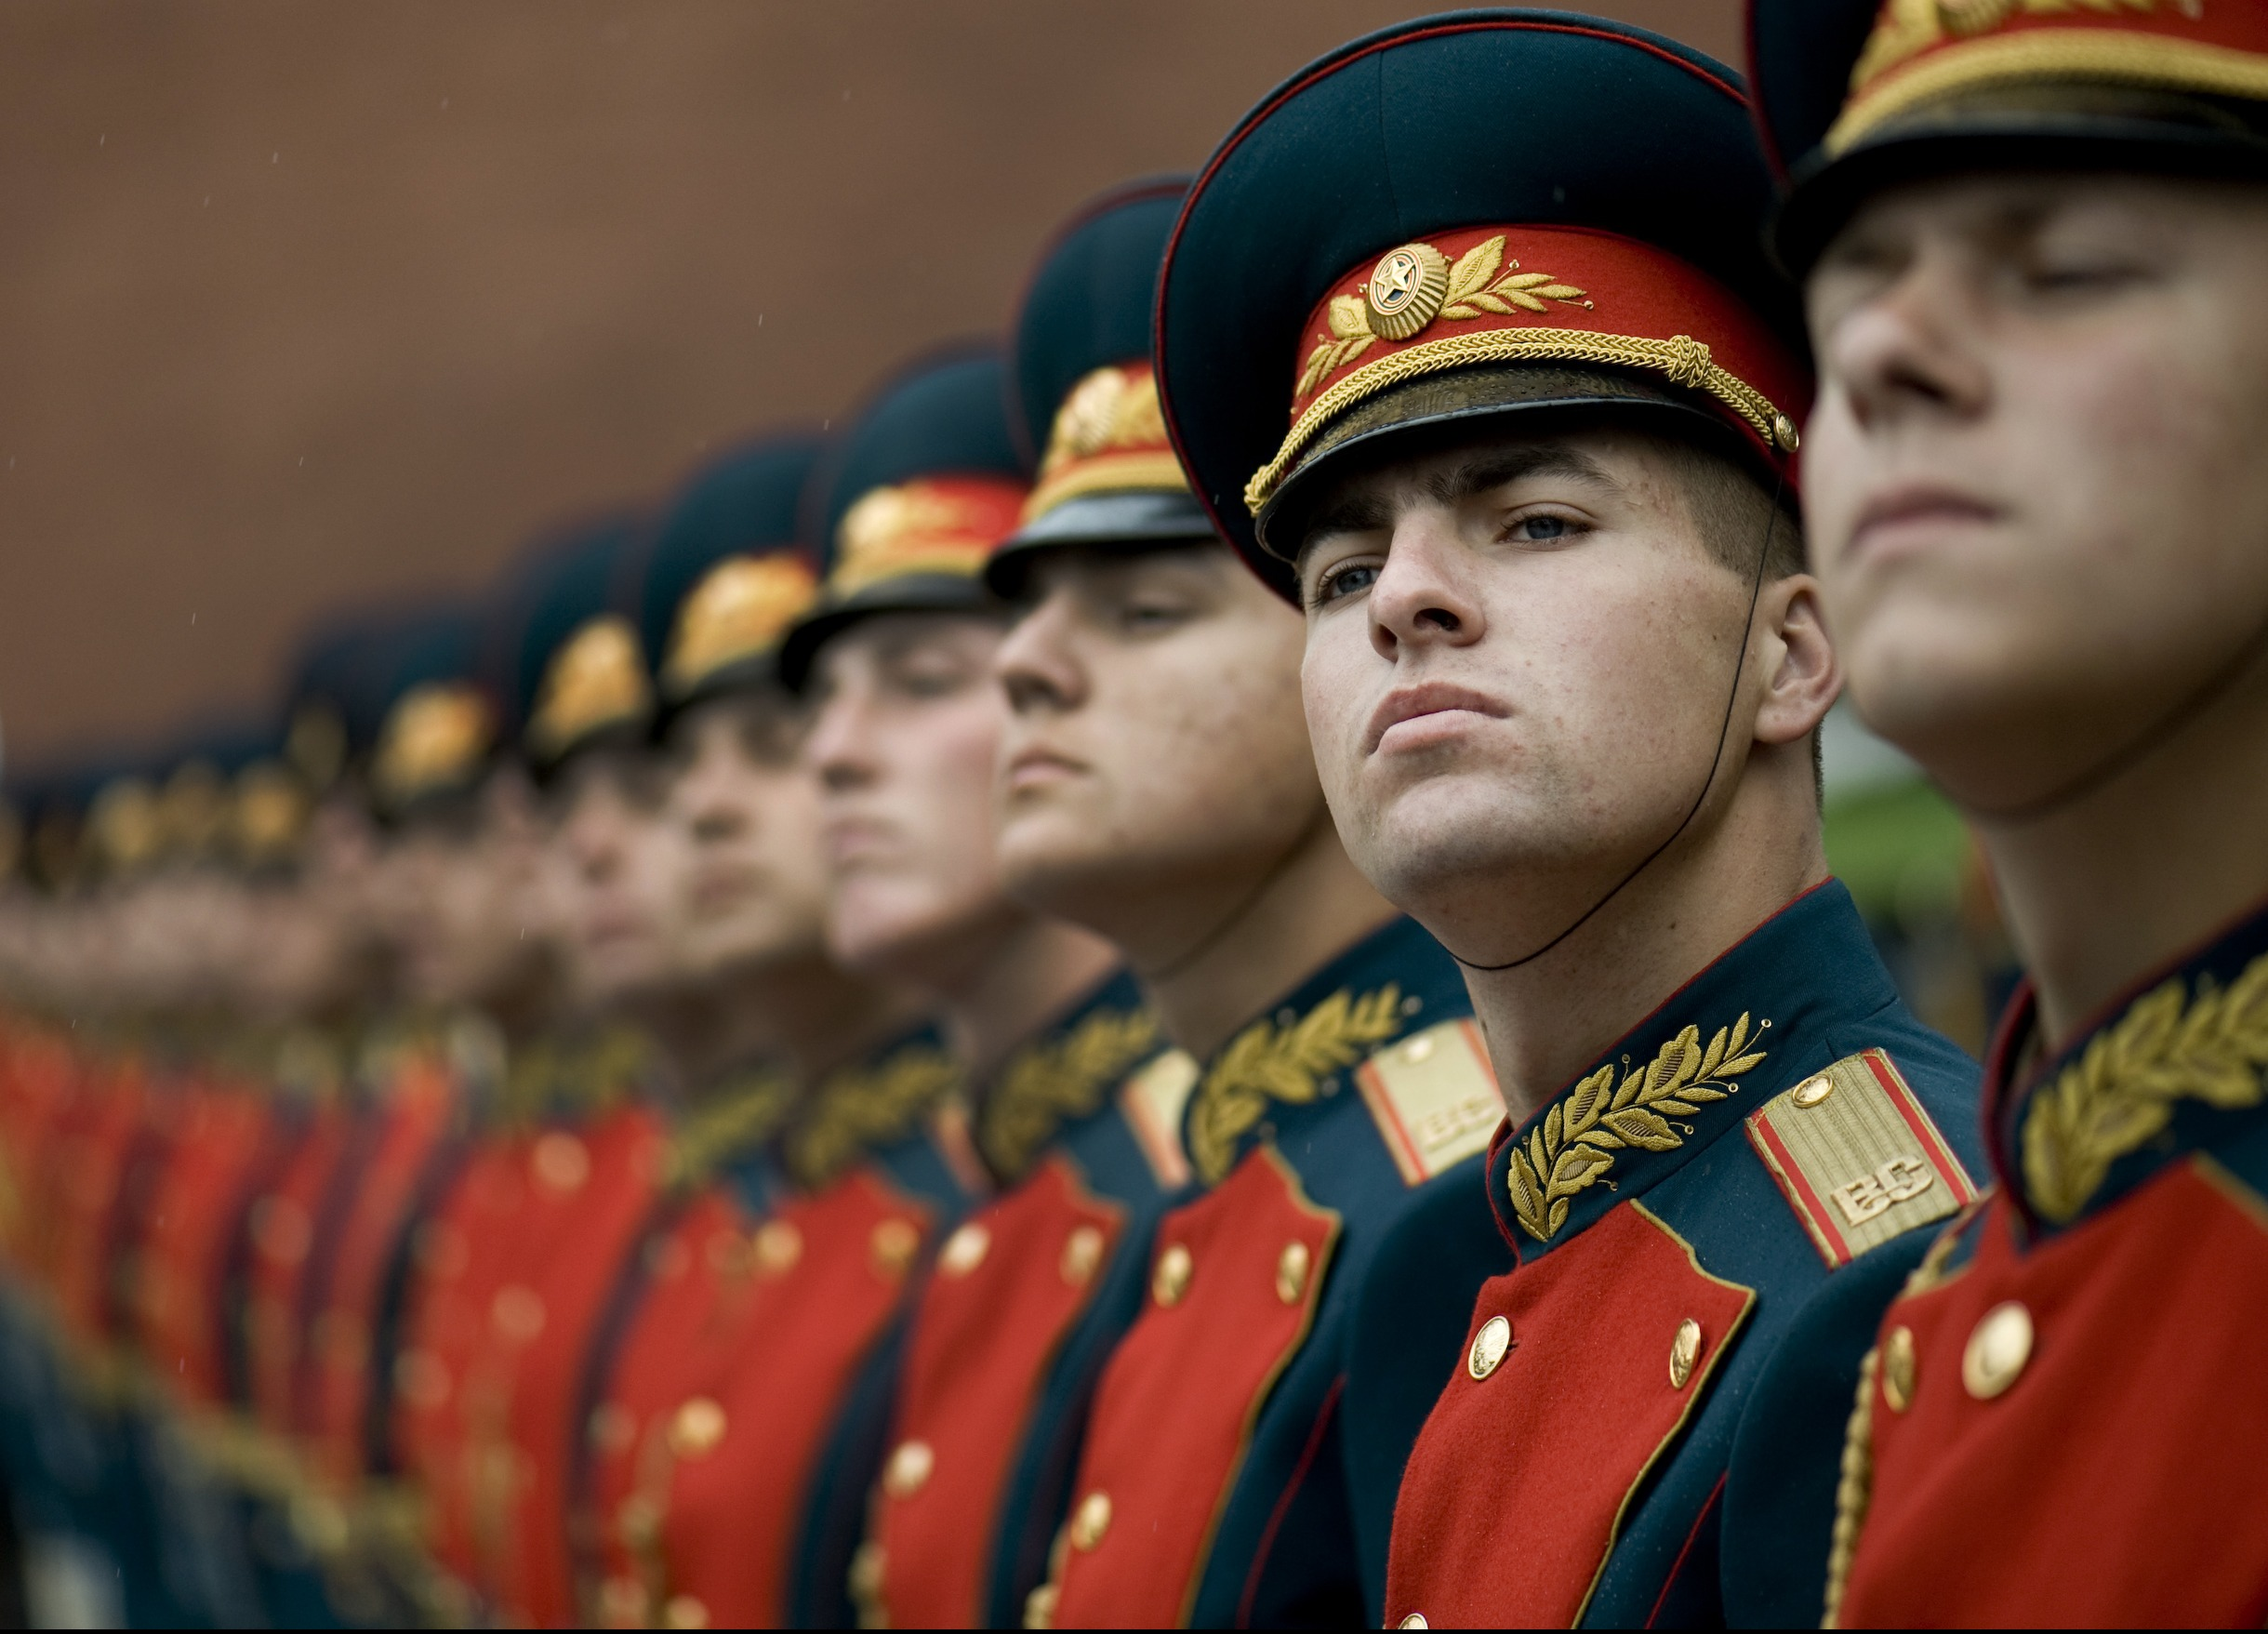 honor-guard-15s-guard-russian-73869